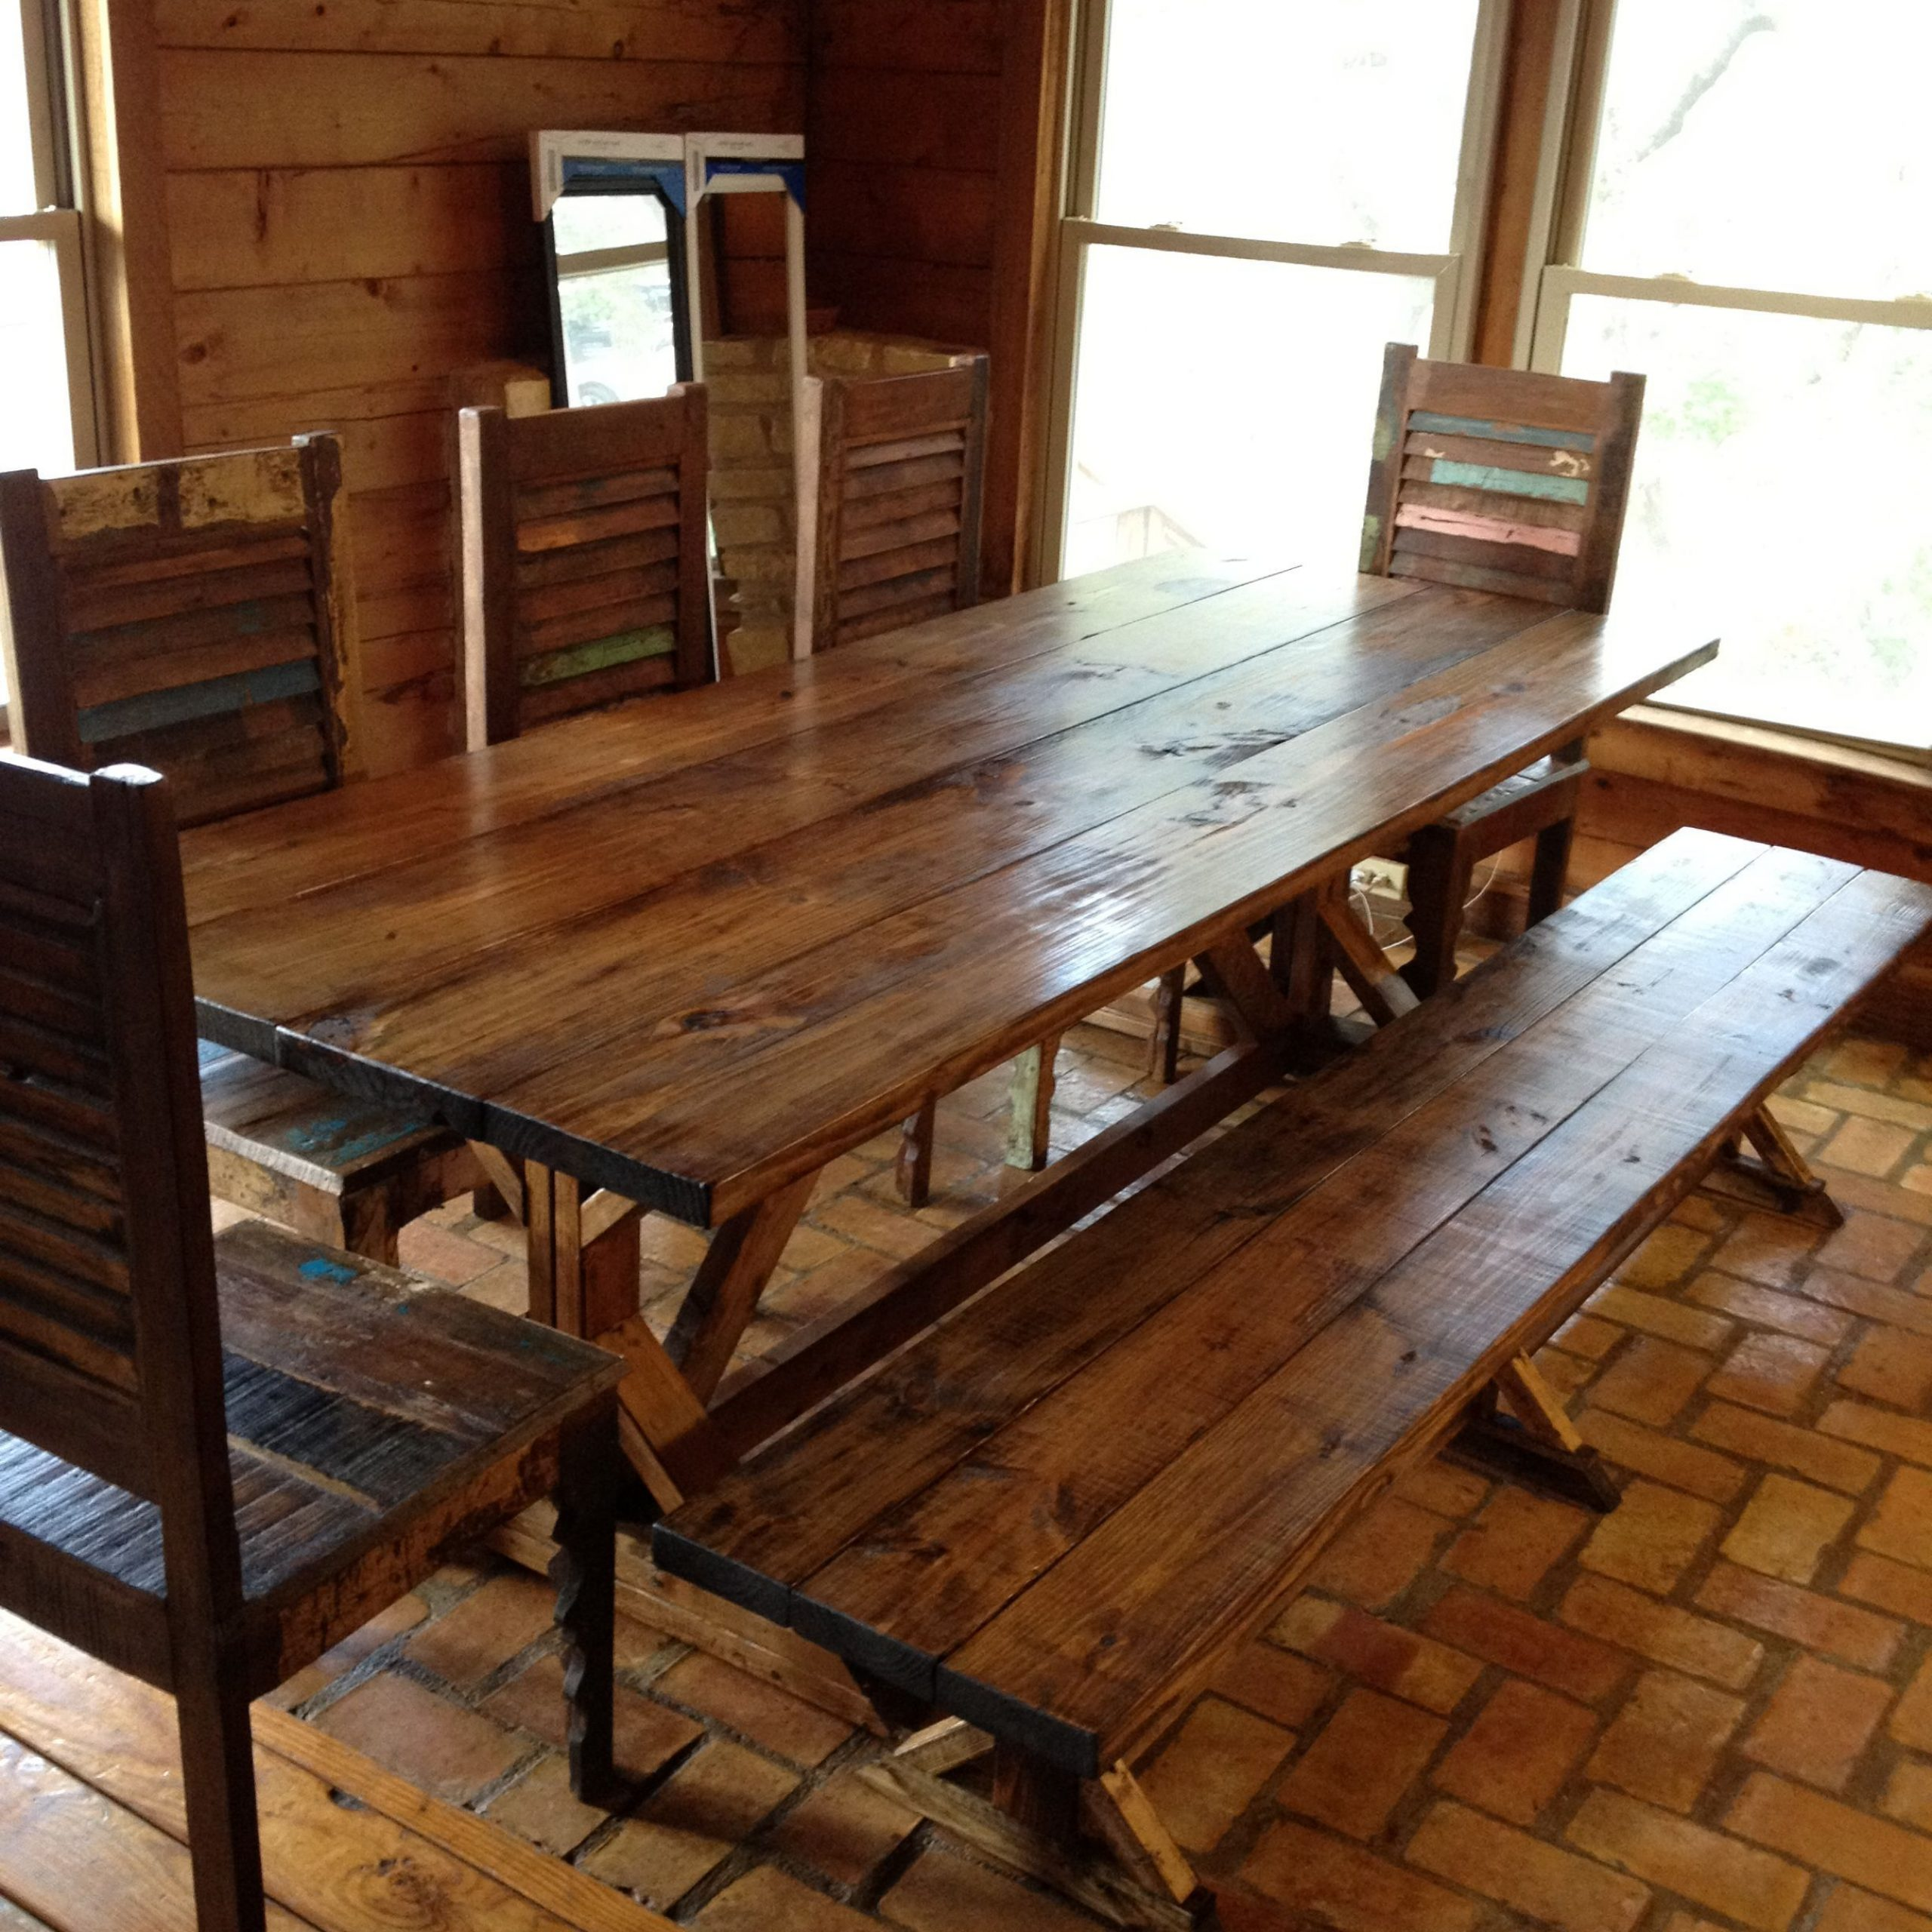 Rustic Dining Tables With Benches Rustic Dining Table Picnic Intended For Most Up To Date Small Rustic Look Dining Tables (View 2 of 25)